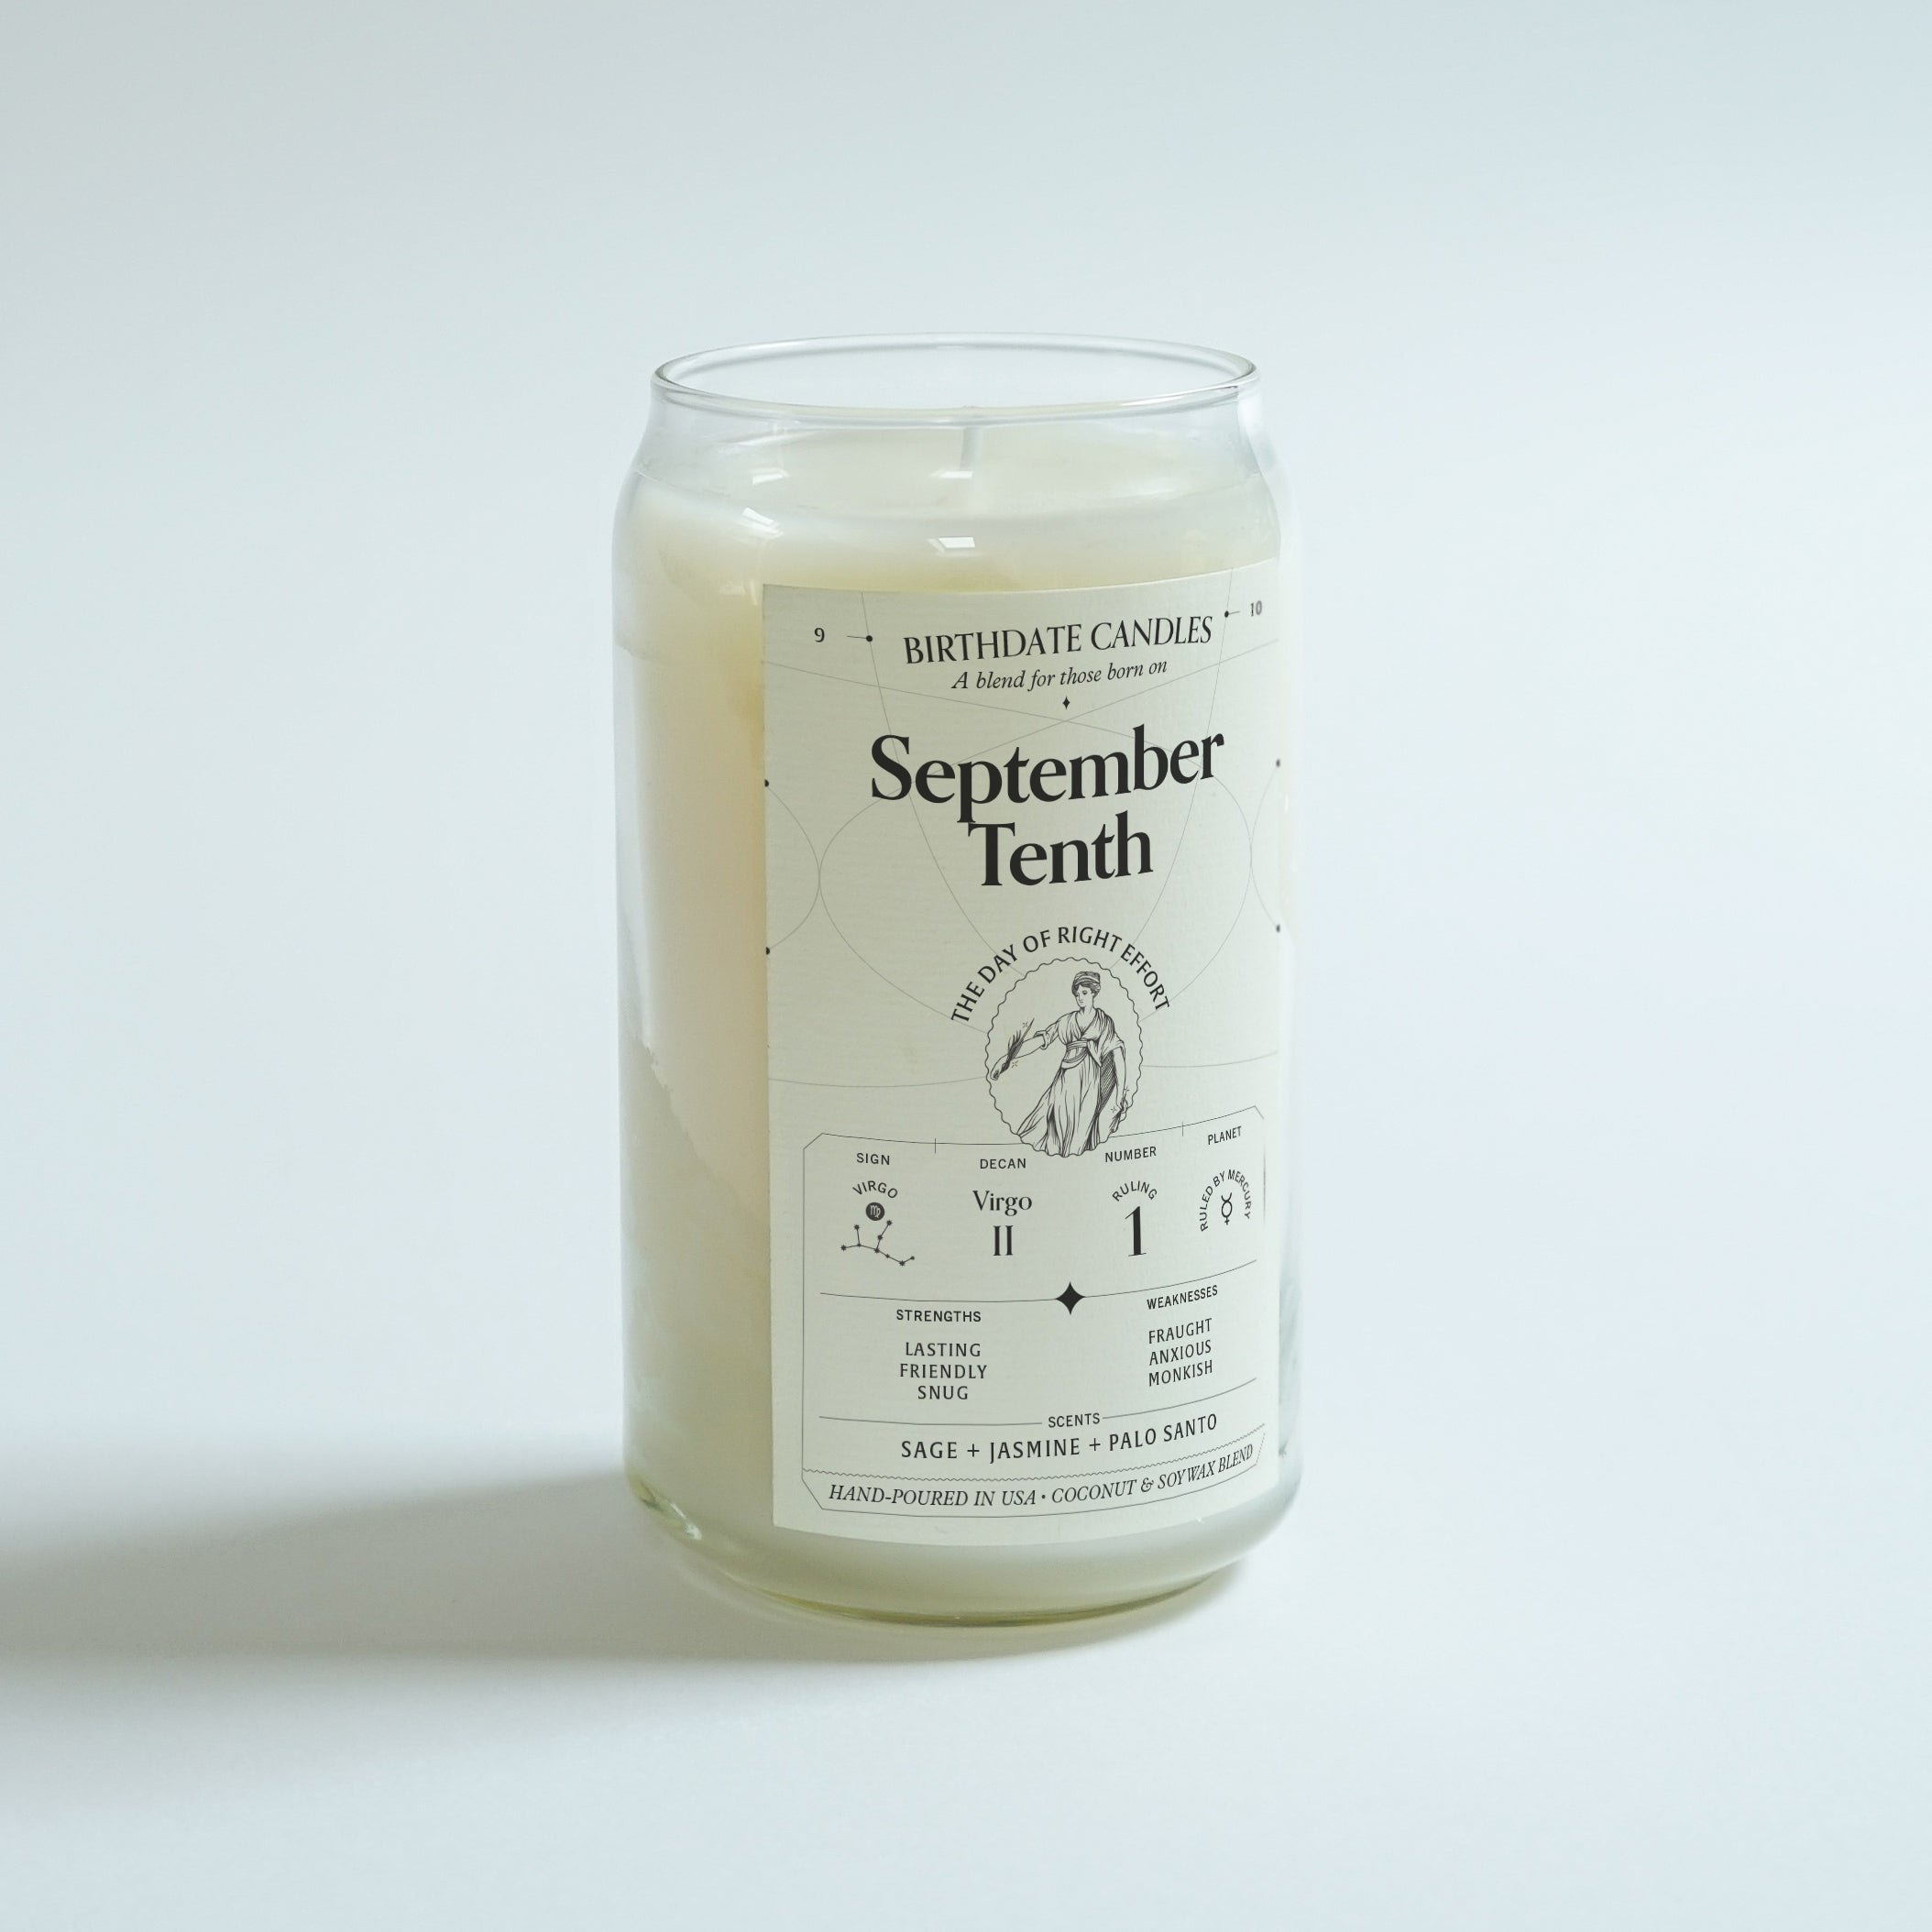 The September Tenth Candle